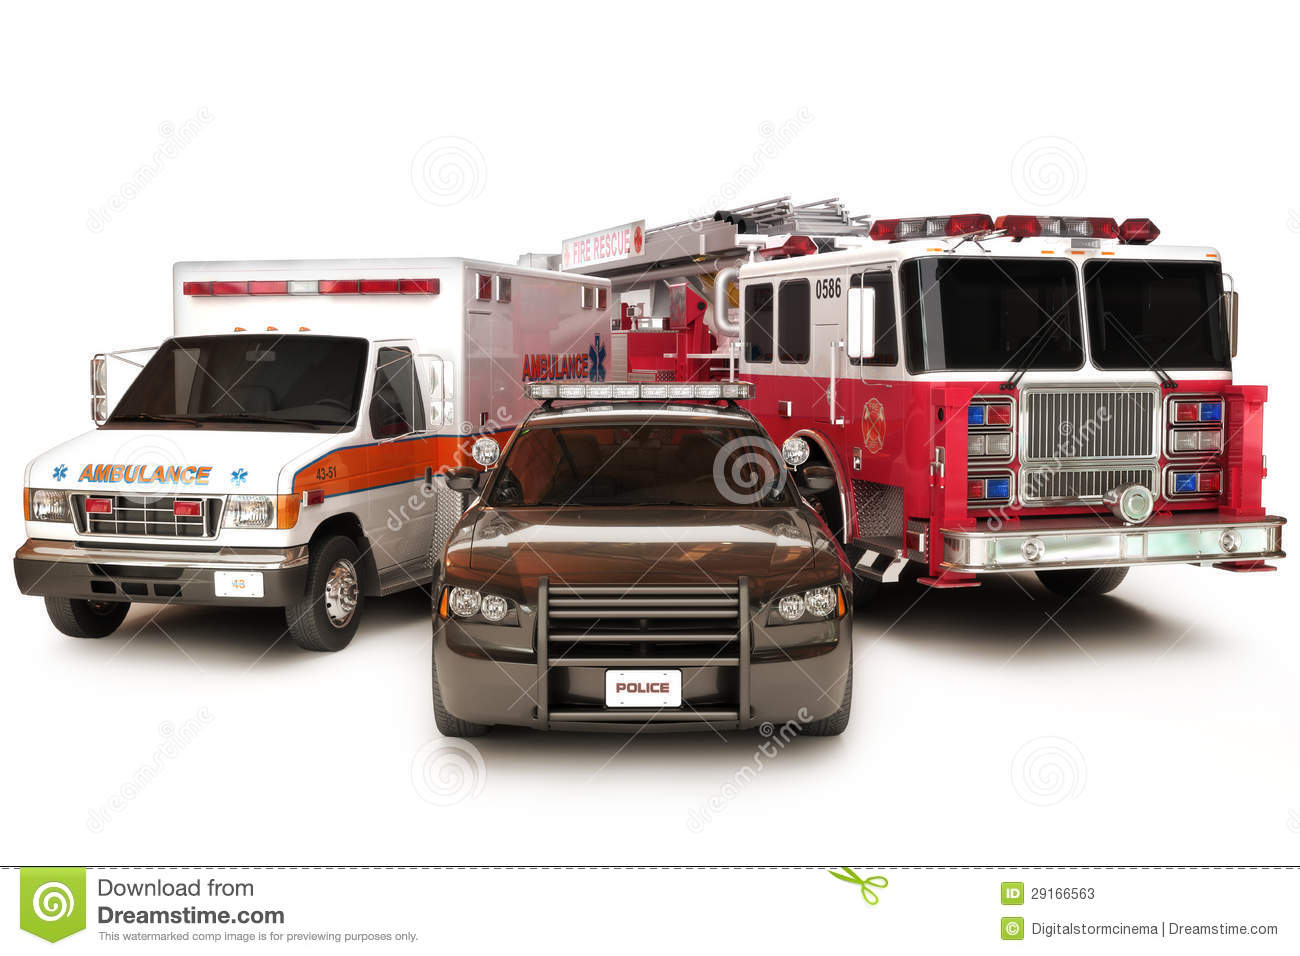 First Responder Vehicles Stock Photos - Image: 29166563